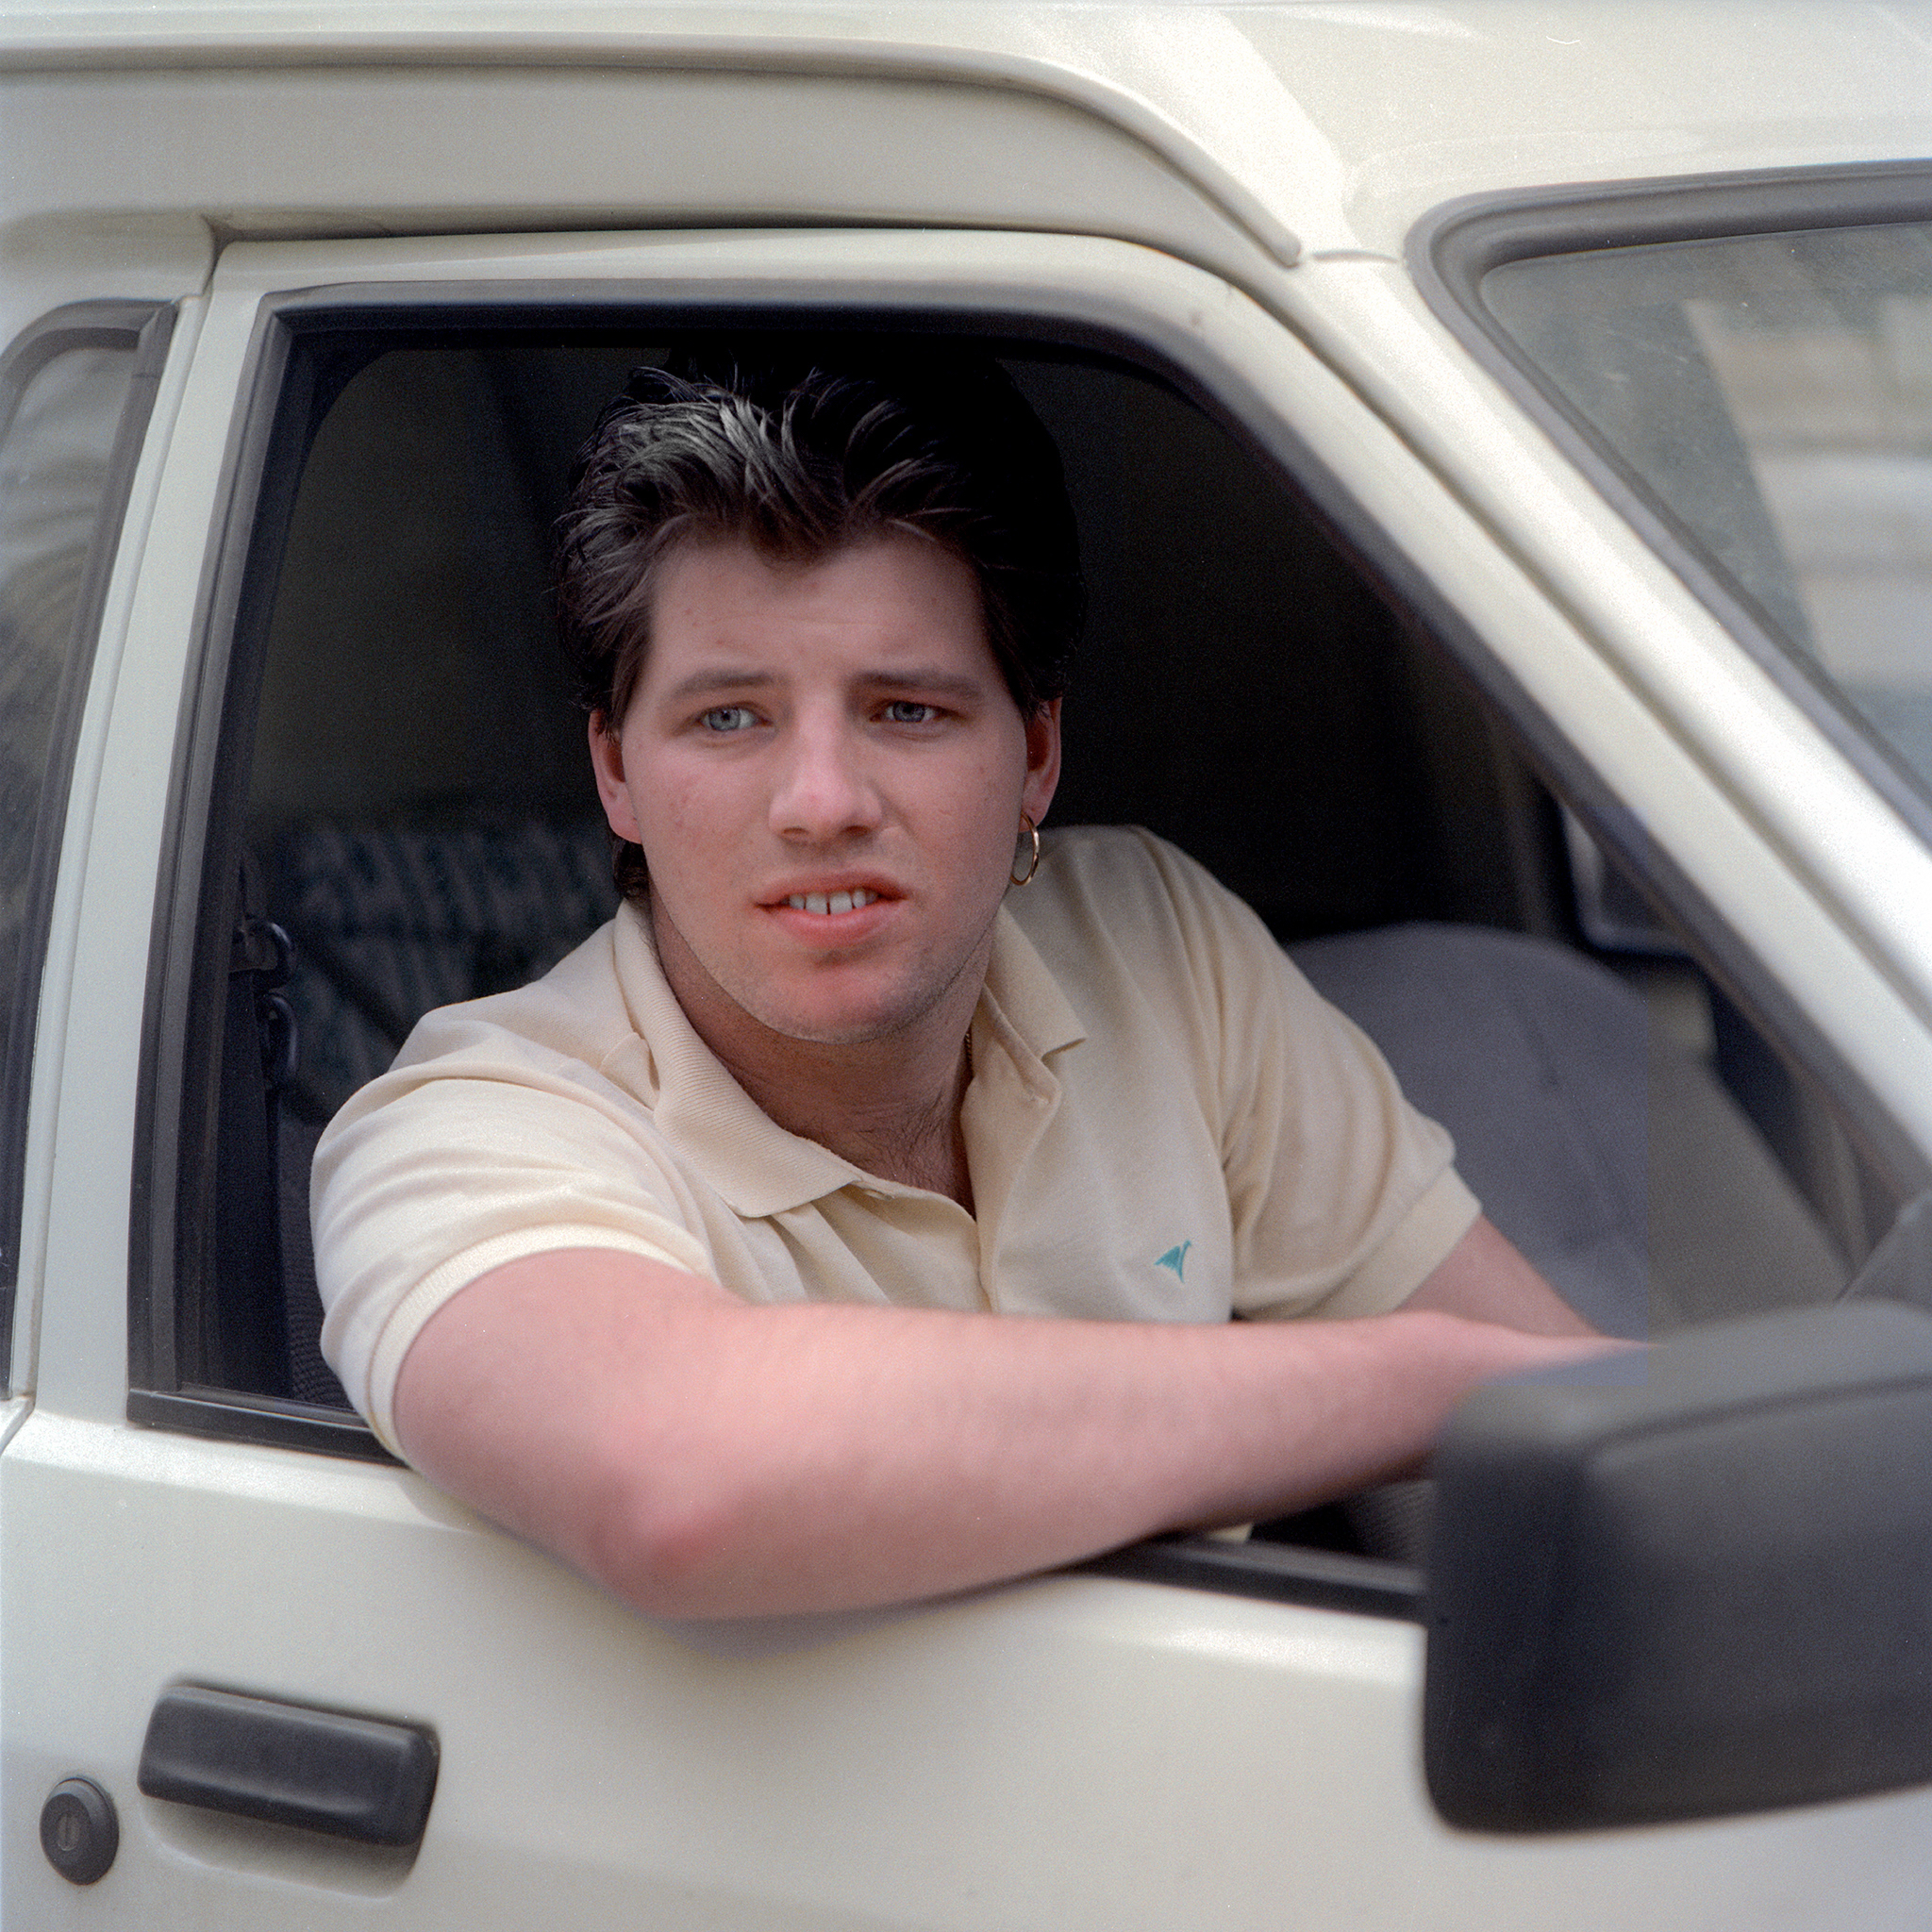 early-white-van-man-1987.jpg